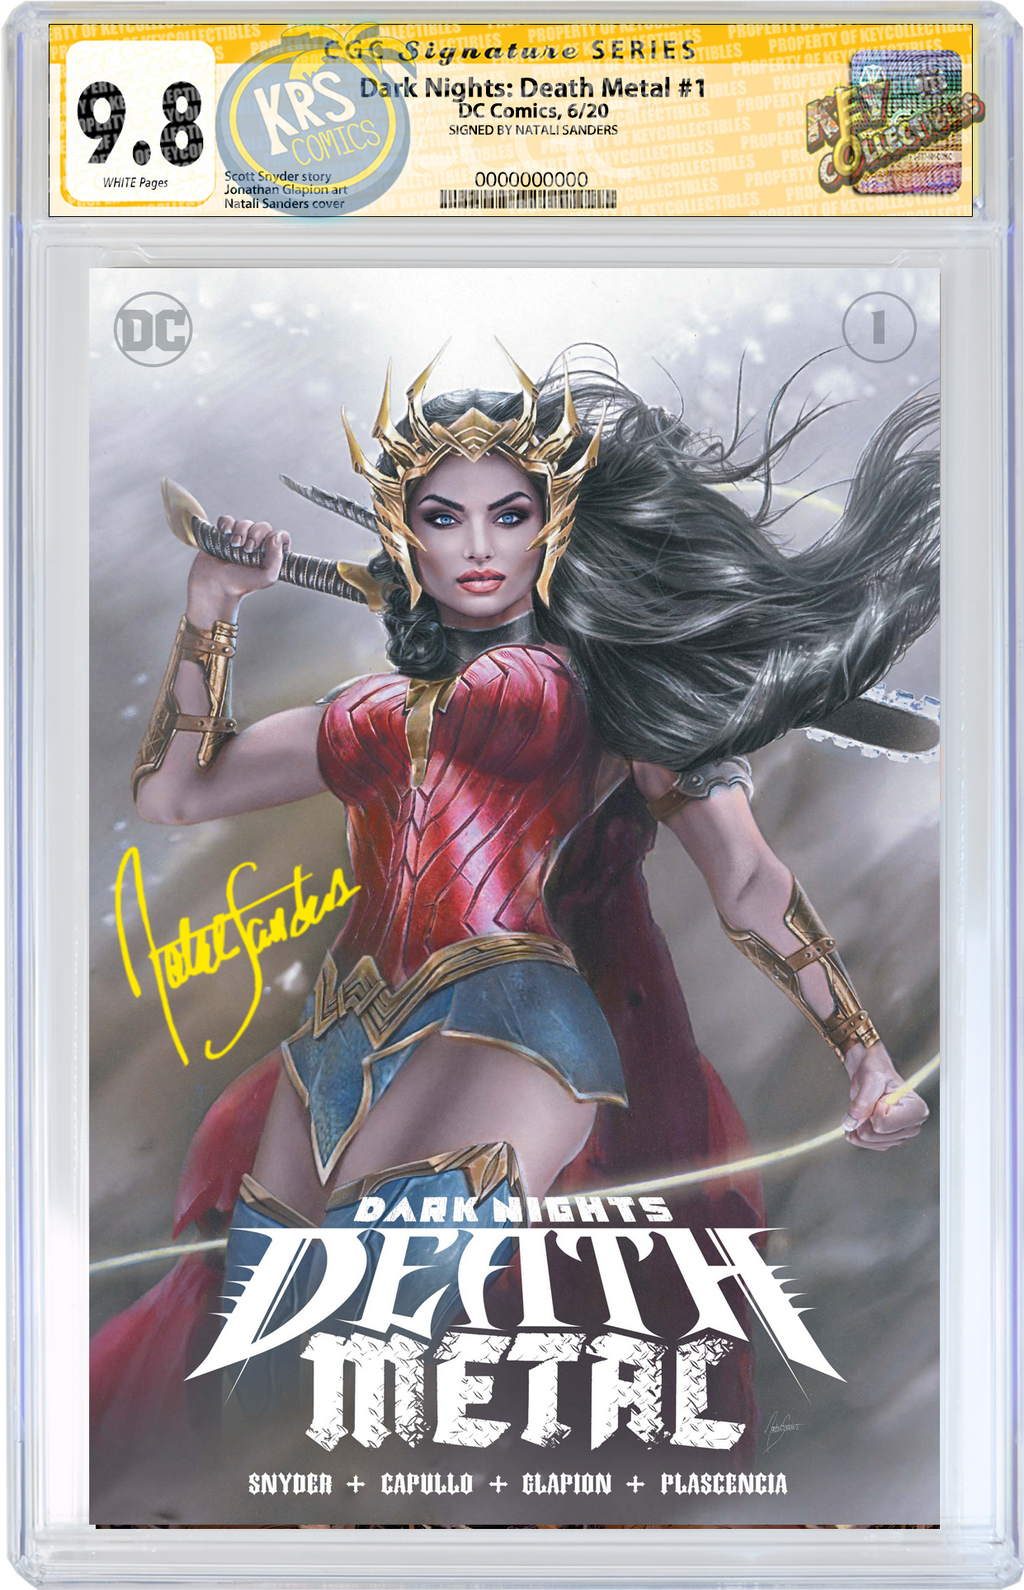 DARK NIGHTS DEATH METAL #1 (OF 6) NATALI SANDERS CGC SIG SERIES OPTIONS